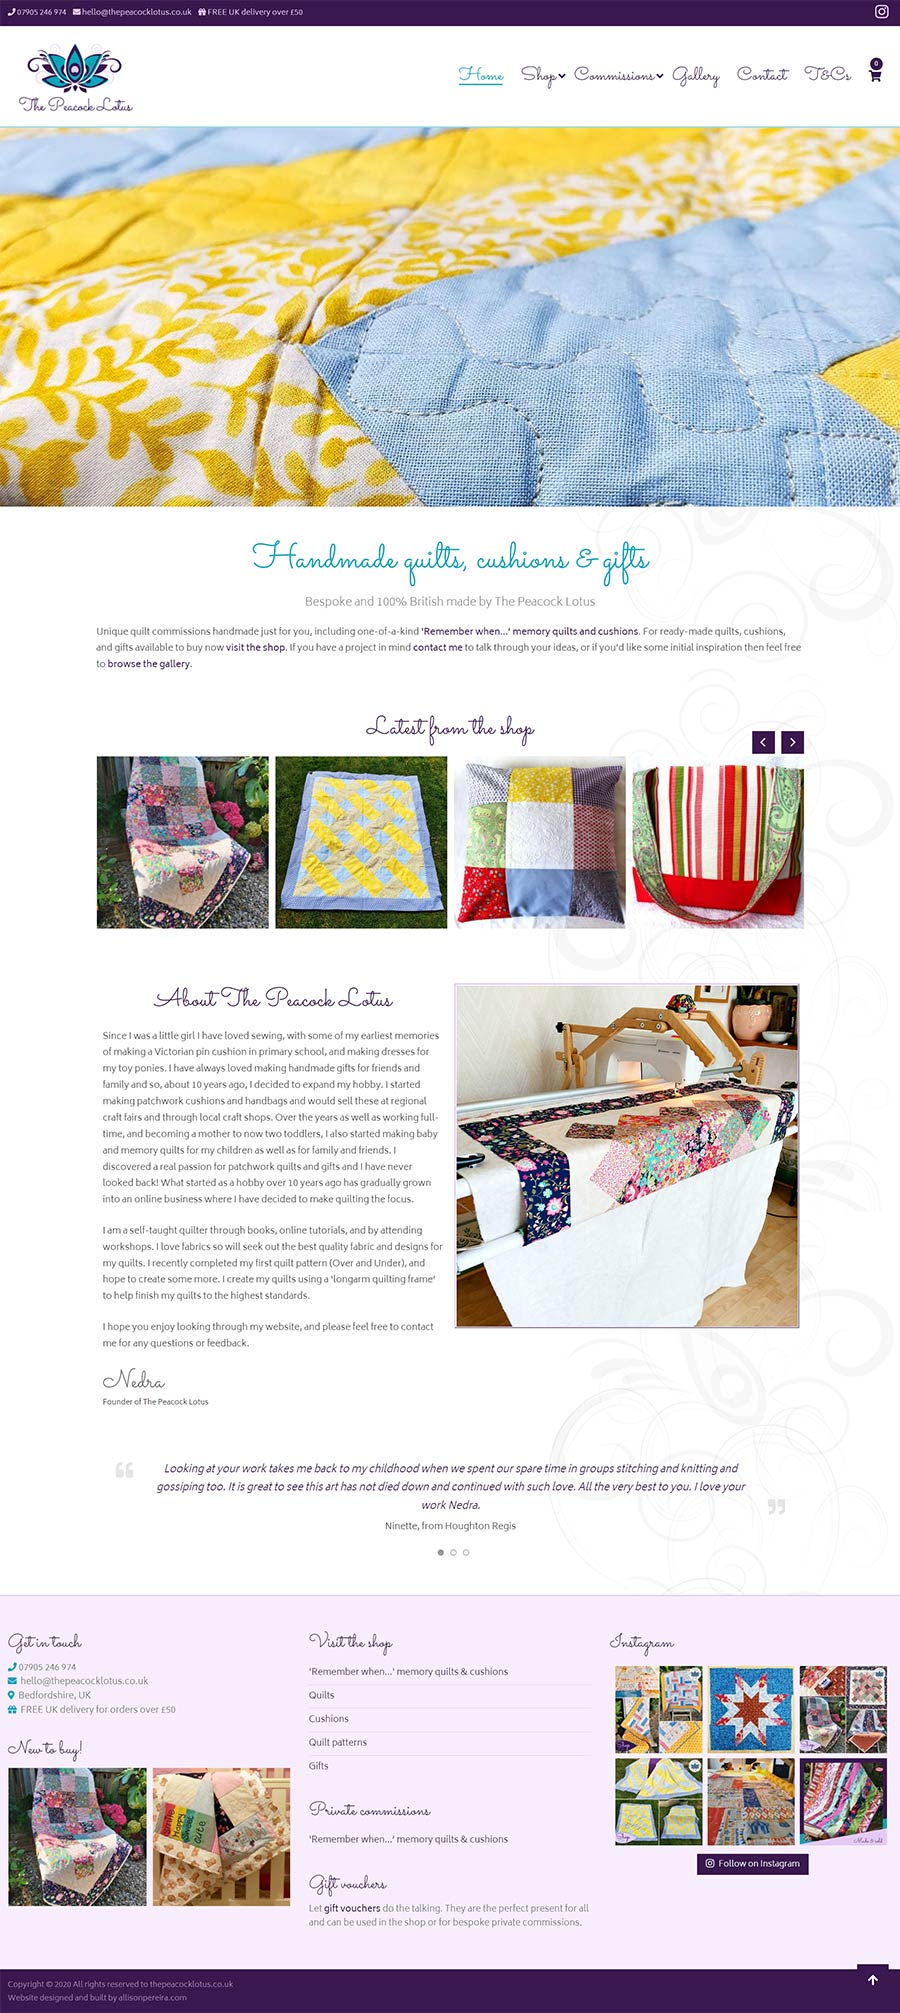 The Peacock Lotus project work web page